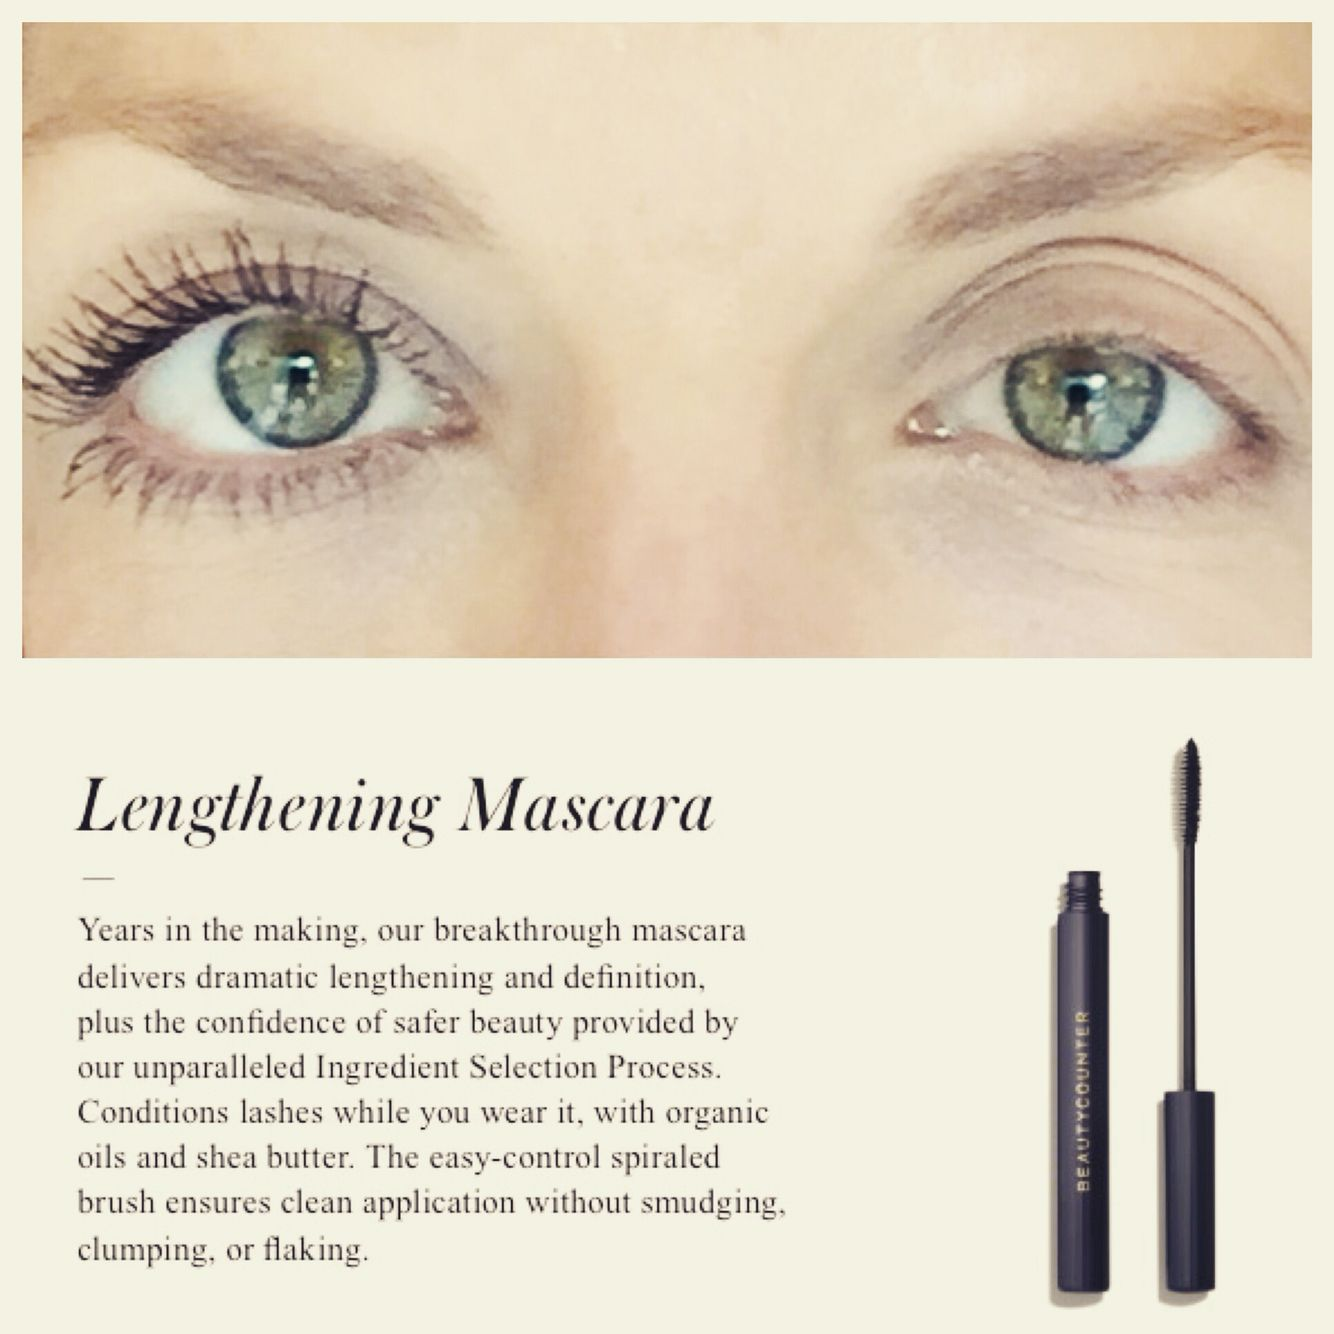 b6c122d18a2 Beautycounter's Lengthening Mascara is here and it works!! I have very  light eyelashes naturally....you can see here that the mascara did its job  and then ...